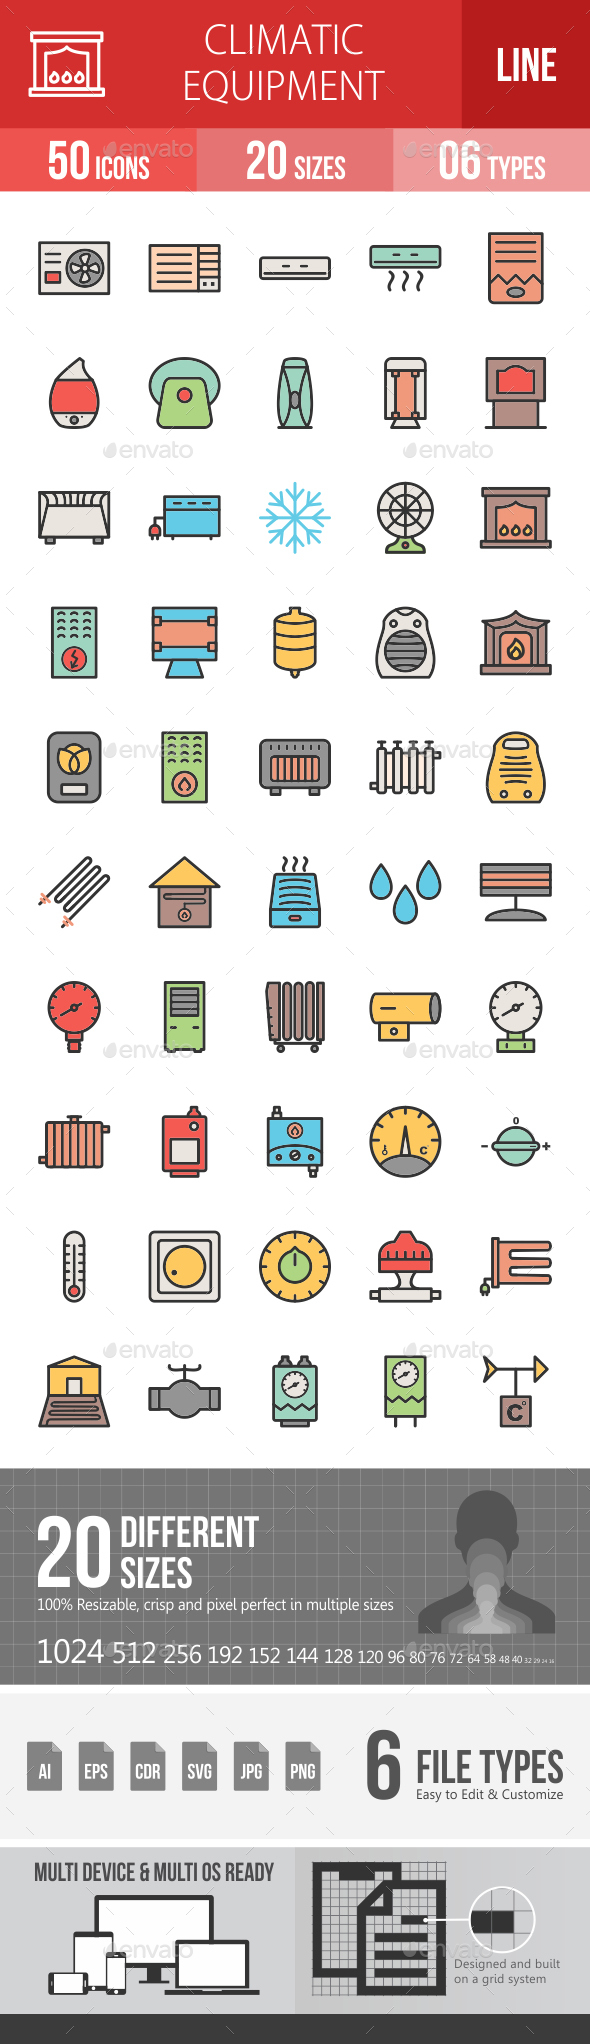 Climatic Equipment Line Filled Icons - Icons